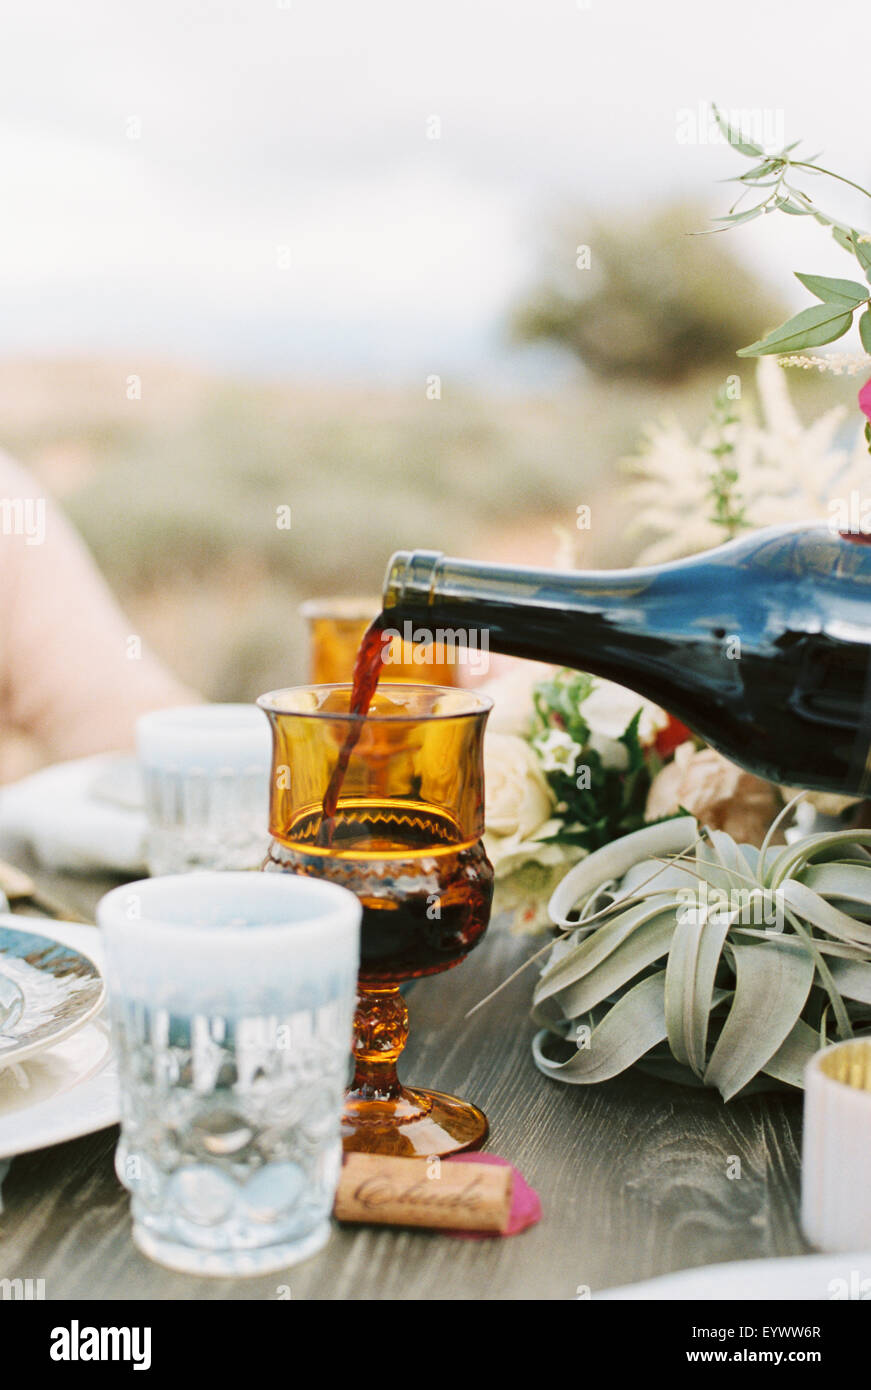 An outdoor meal in a desert, red wine being poured into a glass. - Stock Image